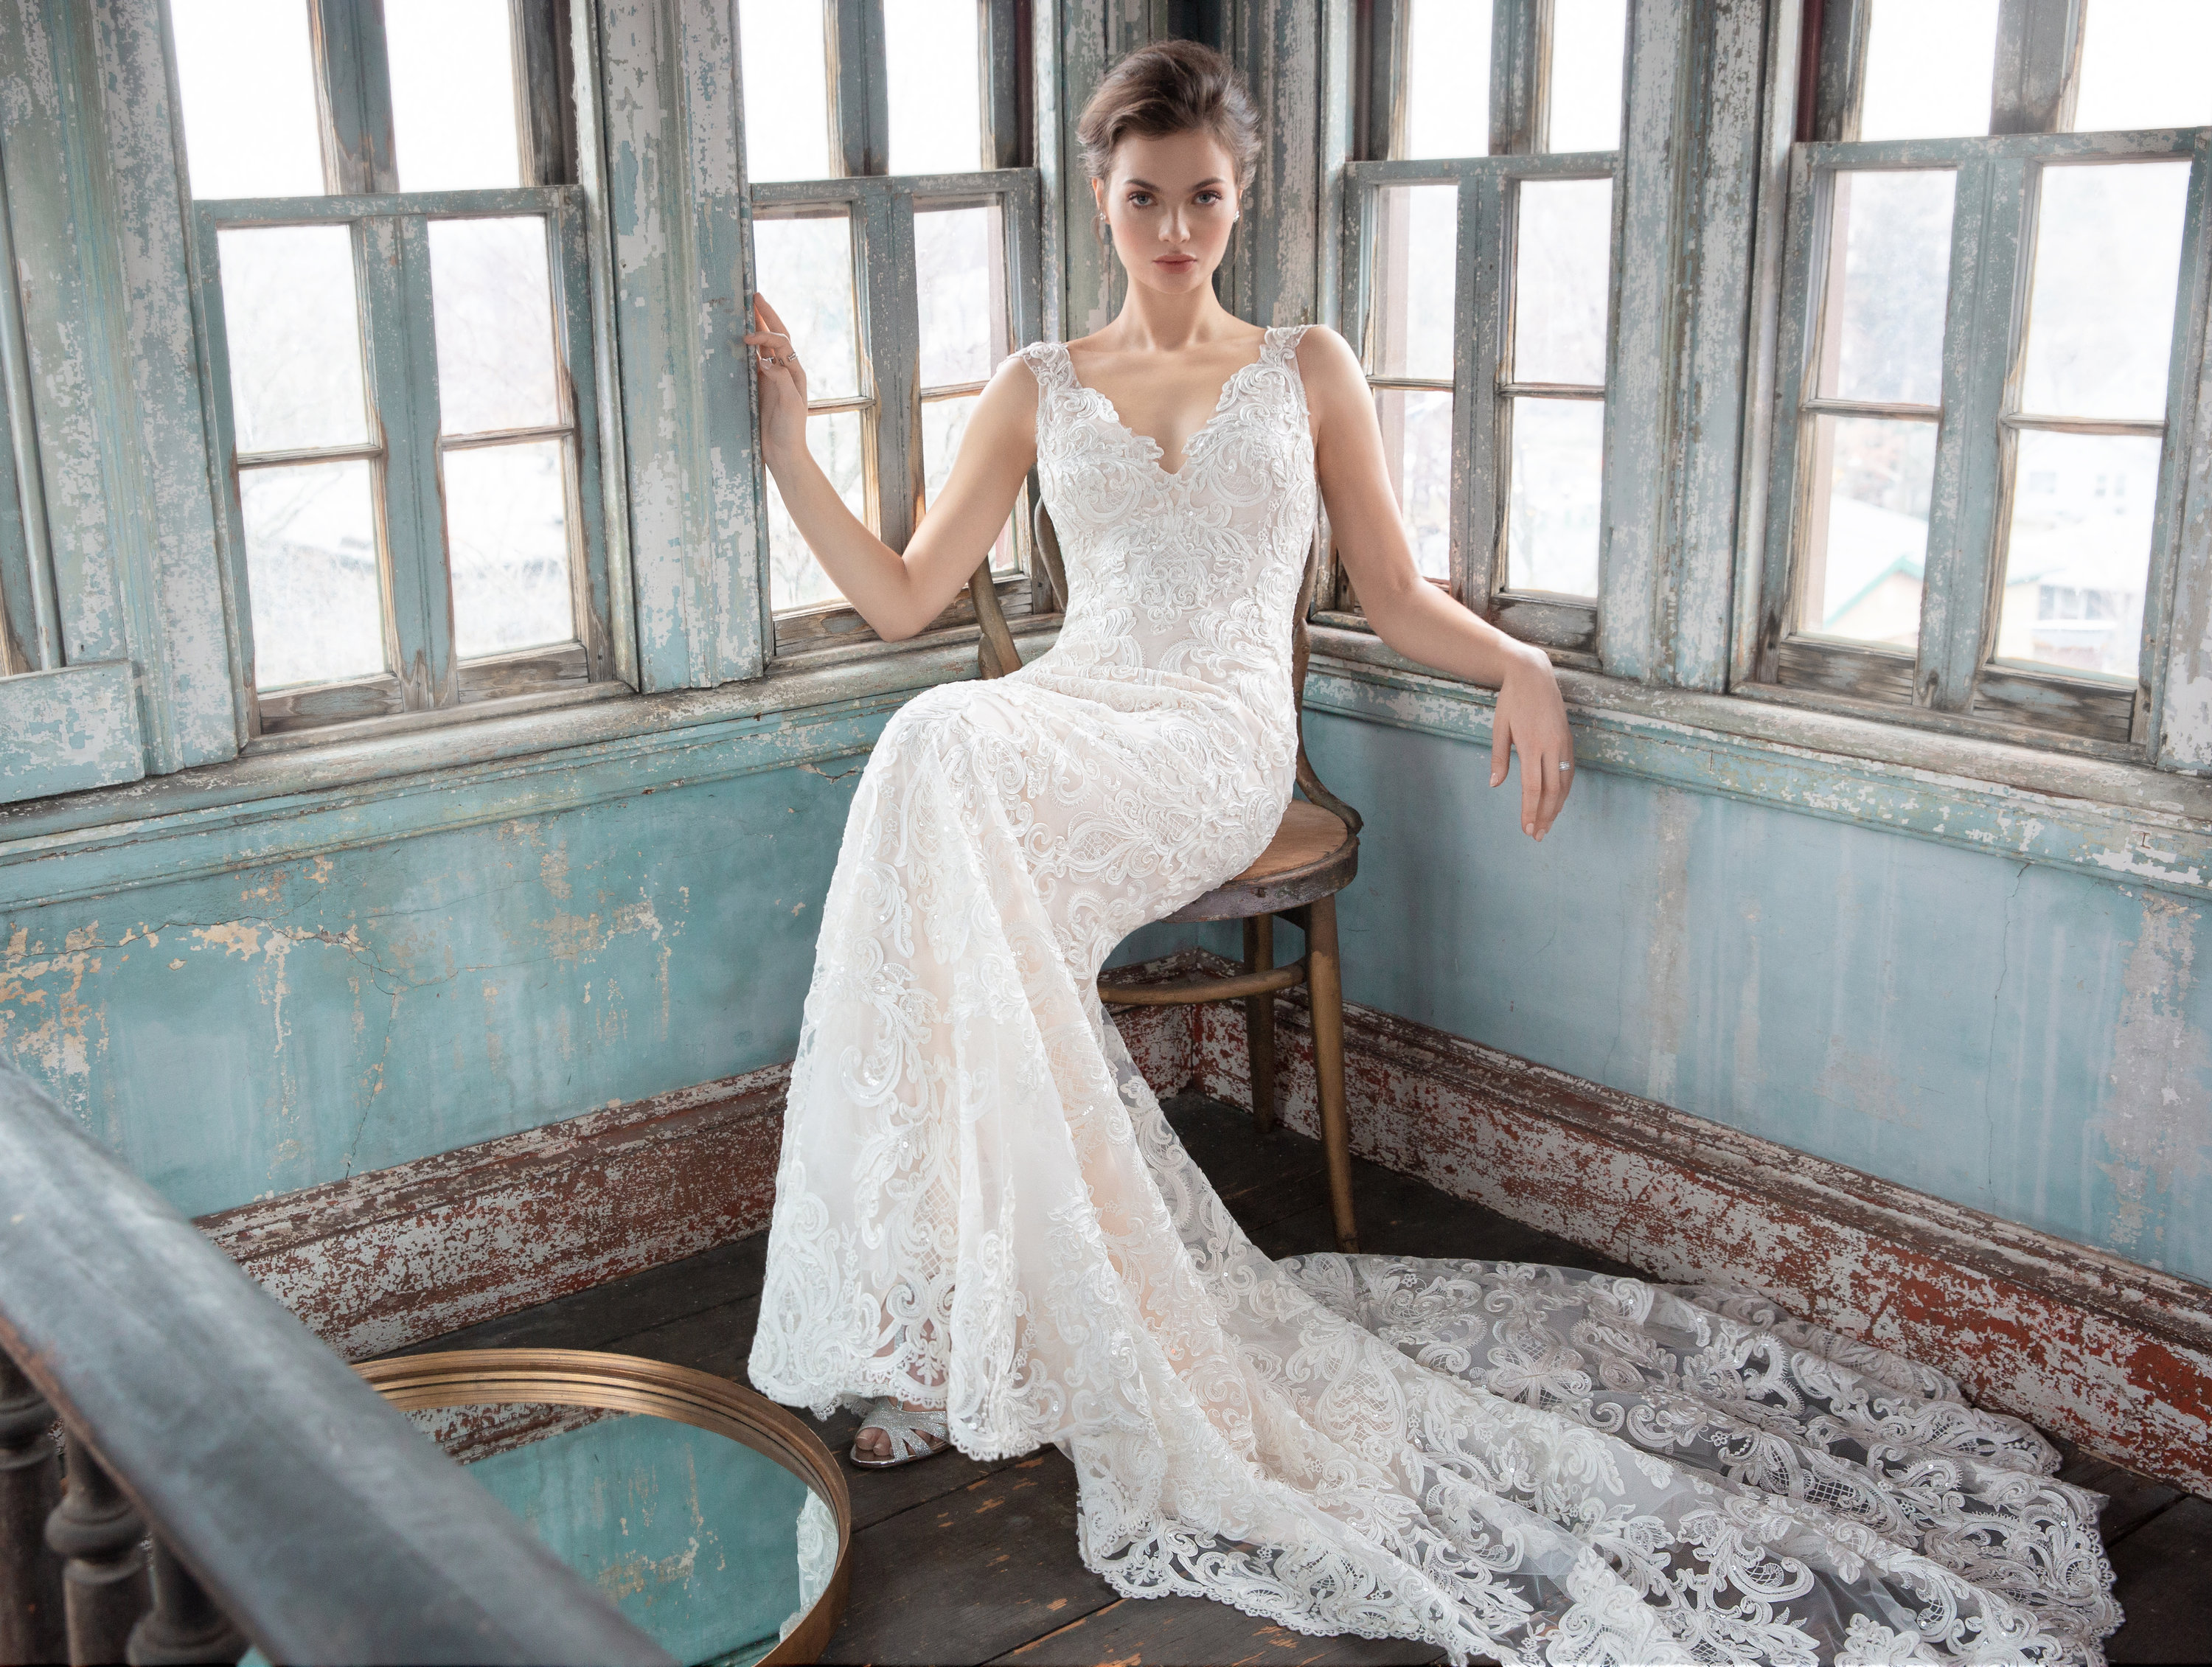 f1ba32dca33 Bridal Gowns and Wedding Dresses by JLM Couture - Style 3904 Lucia